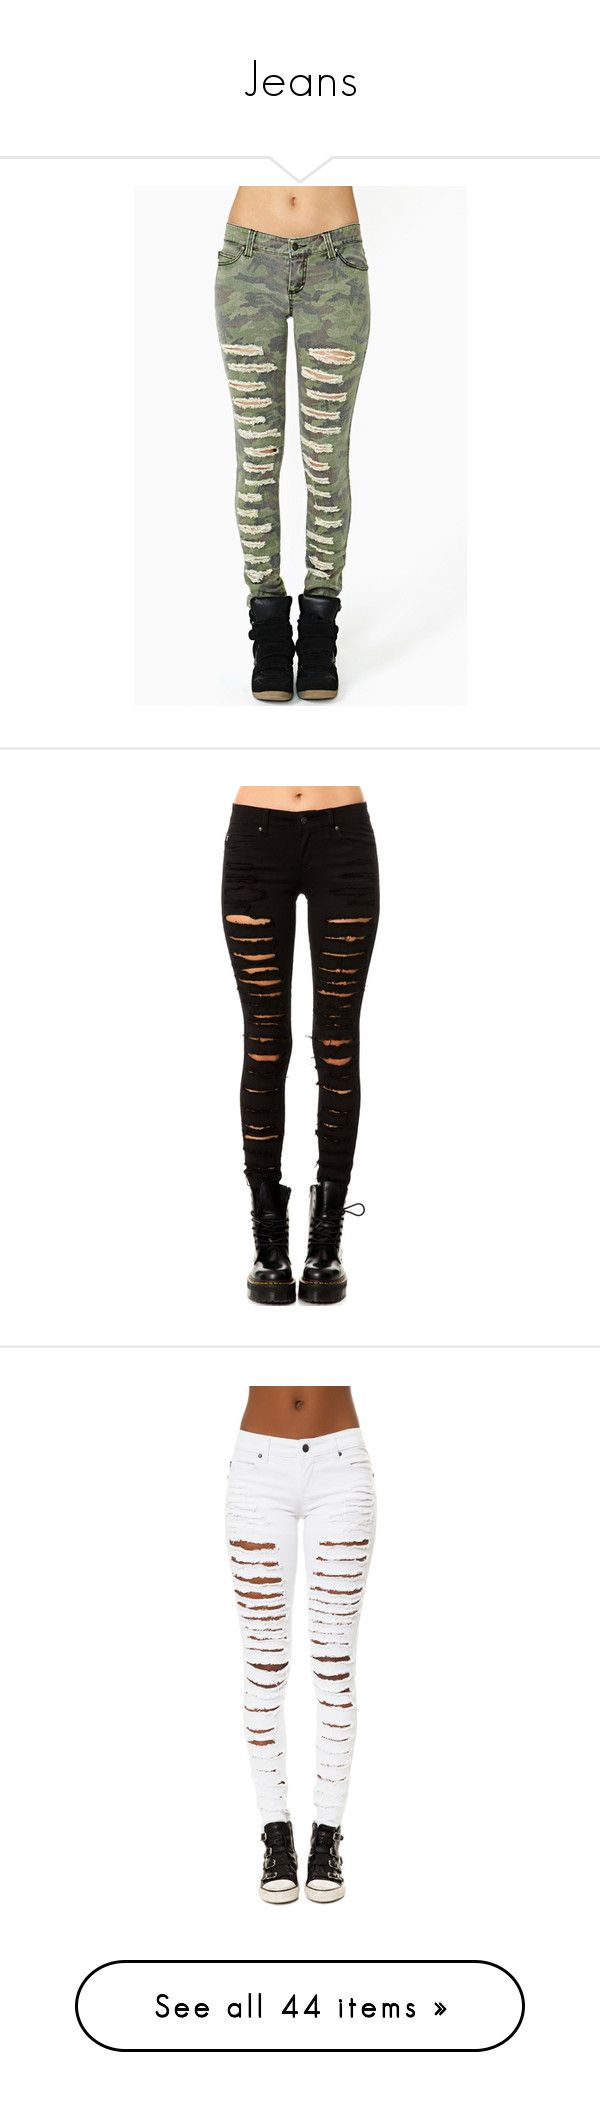 """""""Jeans"""" by neverland-is-just-a-dream-away ❤ liked on Polyvore featuring jeans, pants, bottoms, pantalones, calças, camo, green jeans, stretch jeans, stretch skinny jeans and camo jeans"""